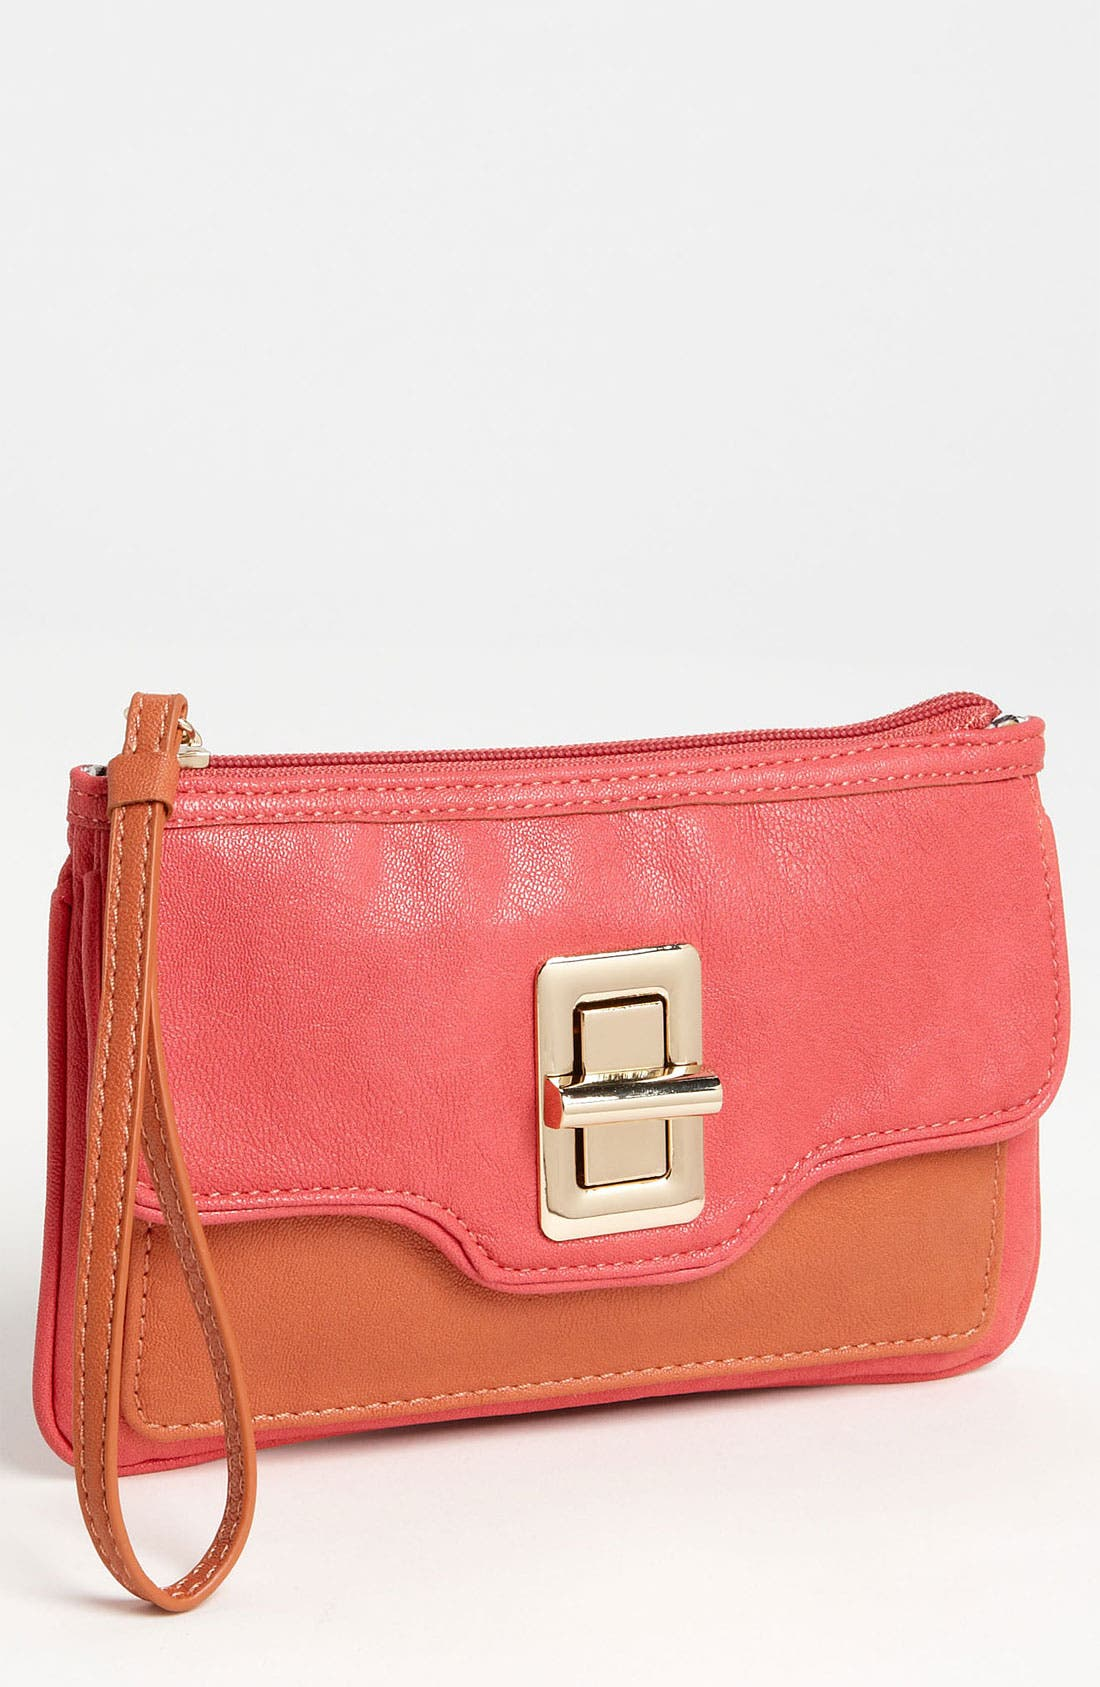 Alternate Image 1 Selected - Danielle Nicole 'Carmen' Colorblock Wristlet